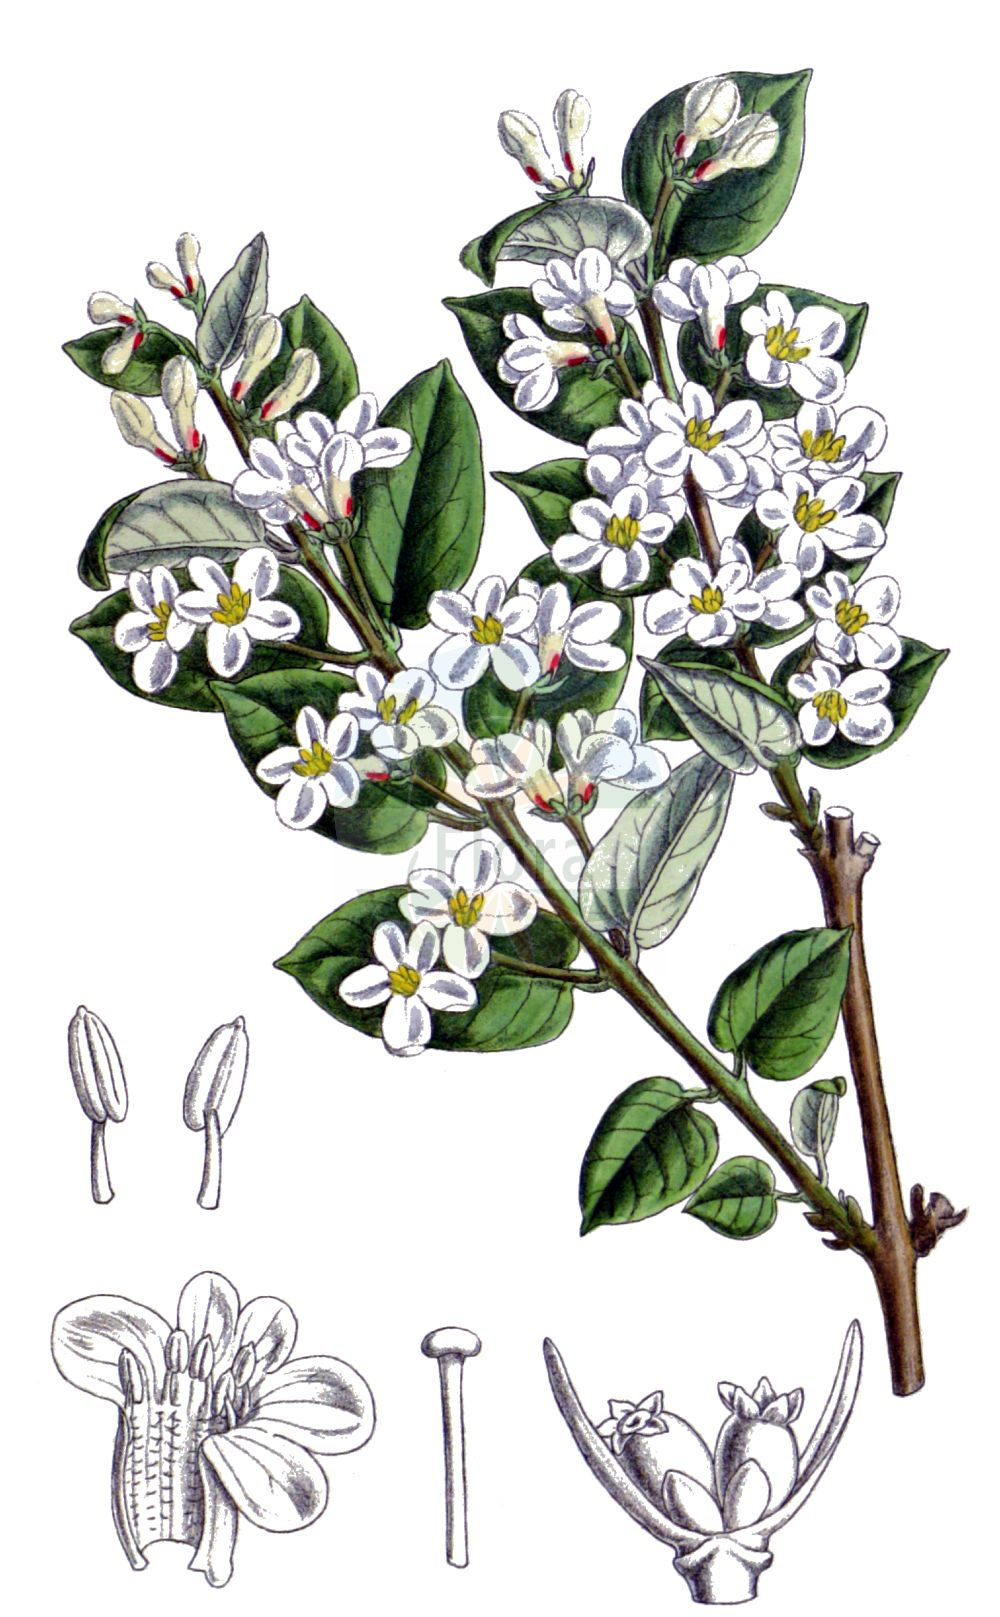 Historische Abbildung von Lonicera tatarica. Das Bild zeigt Blatt, Bluete, Frucht und Same. ---- Historical Drawing of Lonicera tatarica.The image is showing leaf, flower, fruit and seed.(Lonicera tatarica,Lonicera benjaminii,Lonicera tatarica,Lonicera,Heckenkirsche,Honeysuckle,Caprifoliaceae,Geissblattgewaechse,Honeysuckle family,Blatt,Bluete,Frucht,Same,leaf,flower,fruit,seed,Smith (1854-1926))